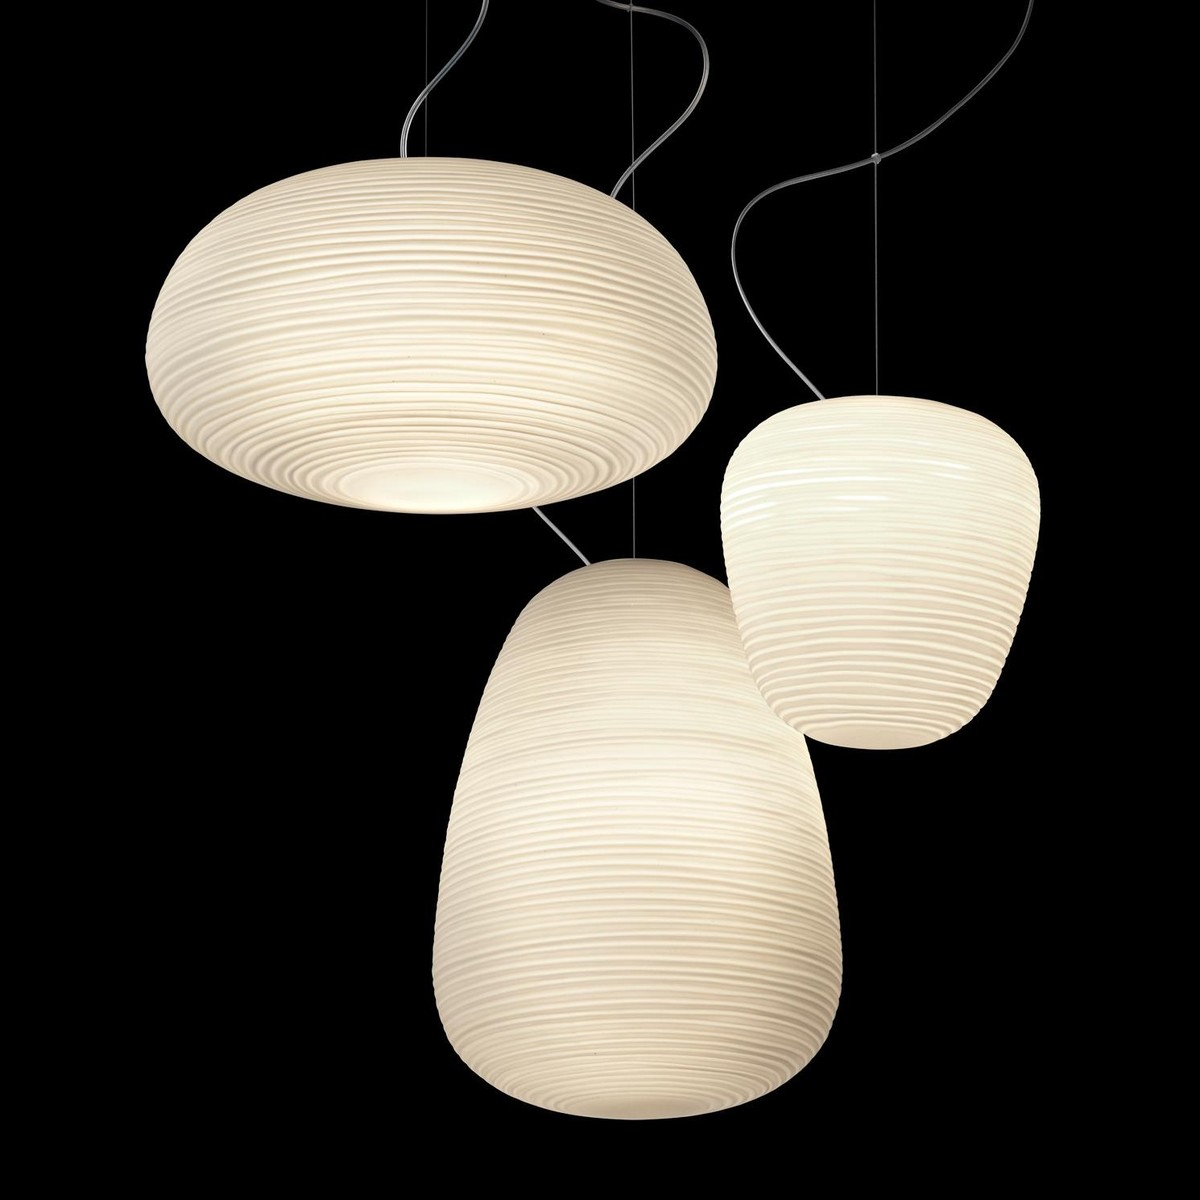 Rituals suspension lamp foscarini for Lampe suspension blanche